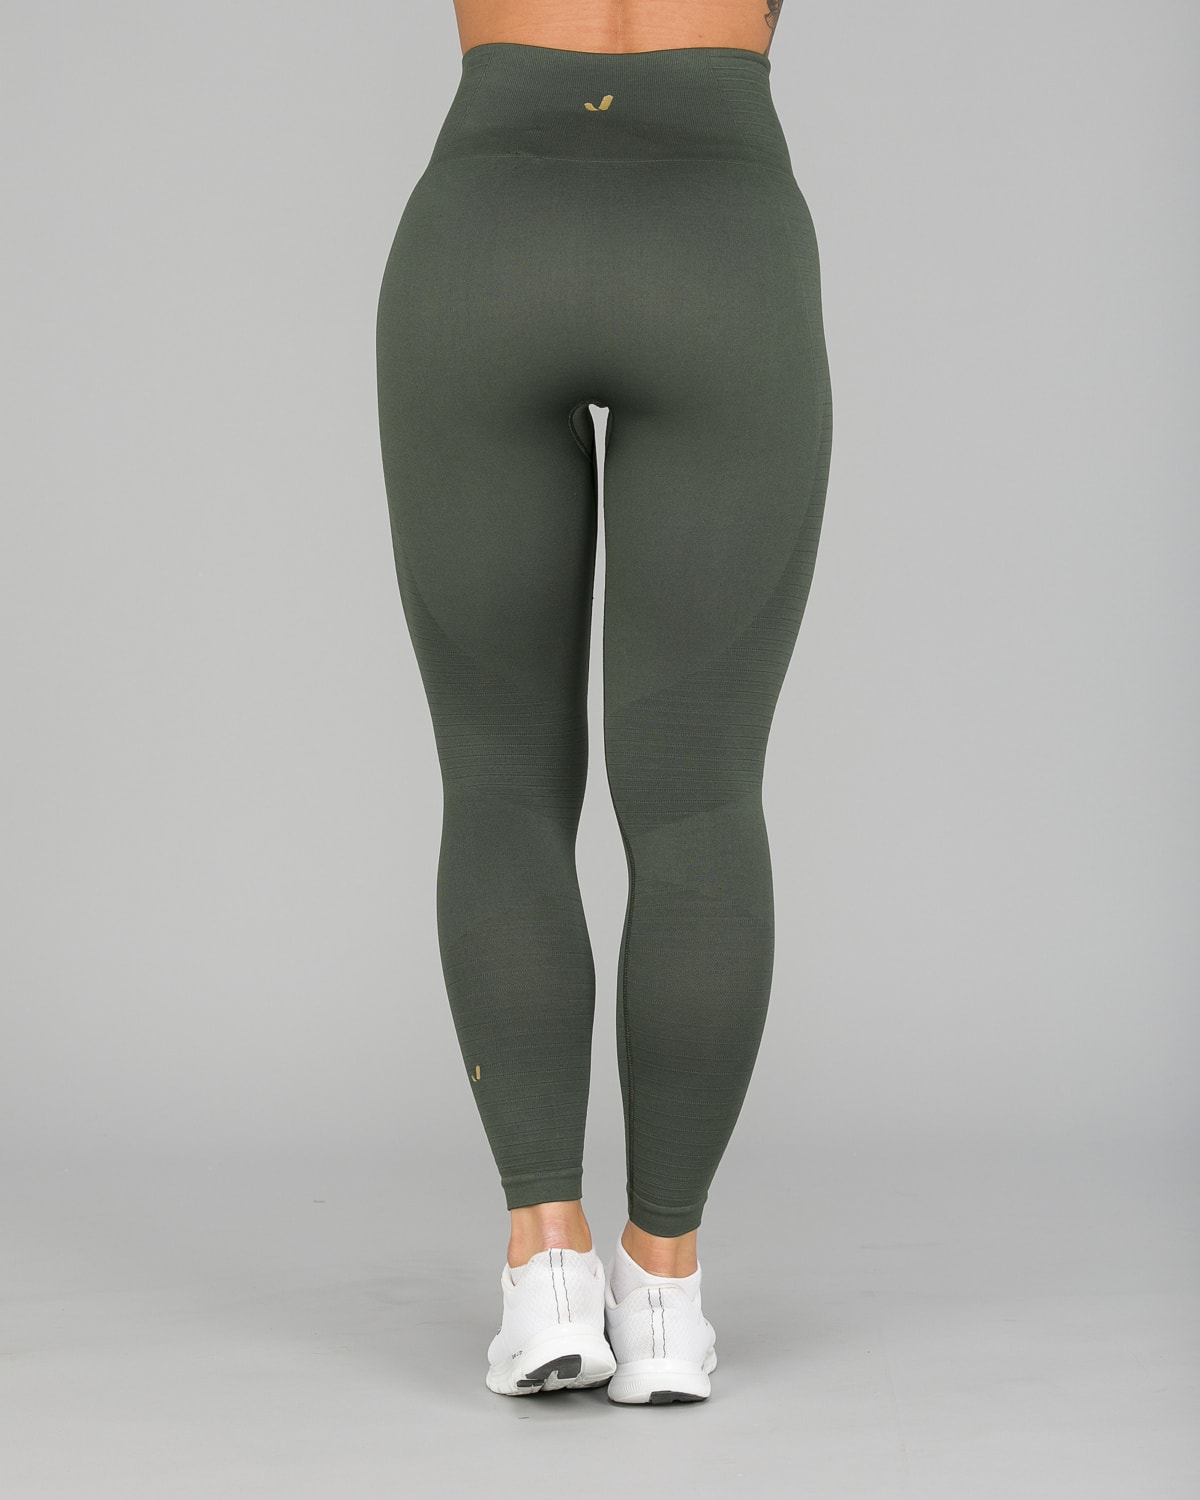 Jerf Gela 2.0 tights dark green3